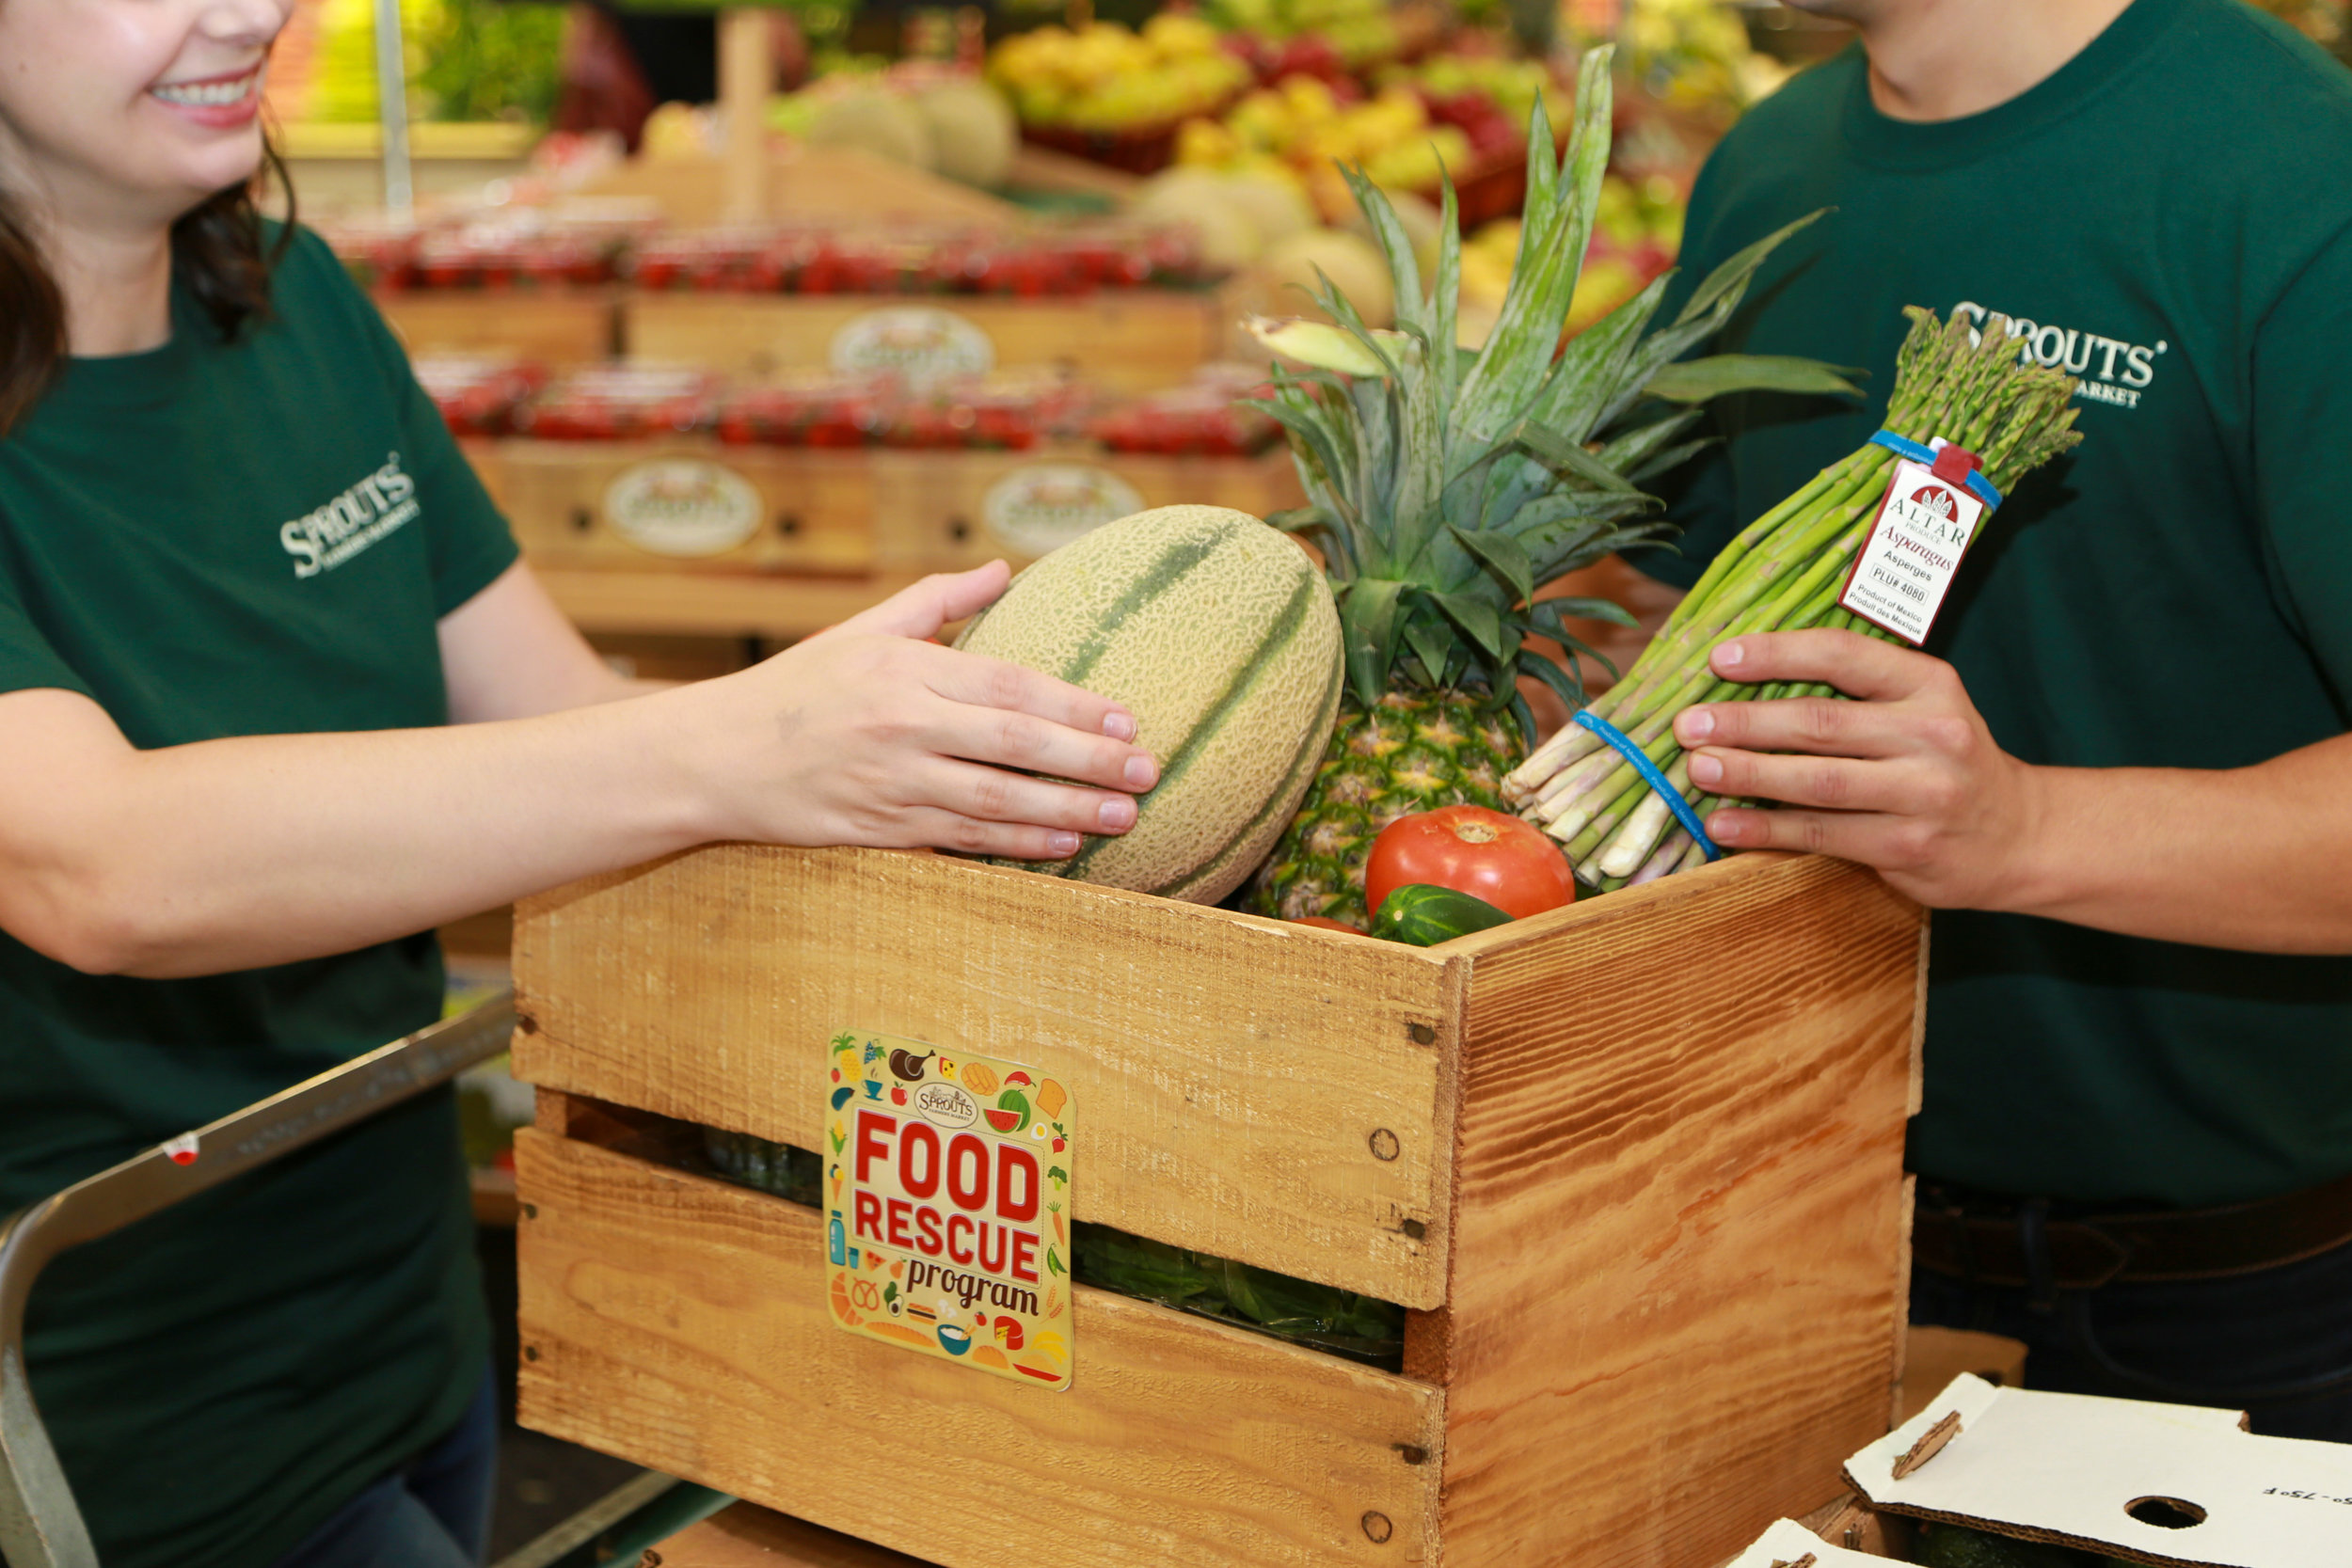 Your new favorite grocery store - Sprouts Farmers Market in Philly